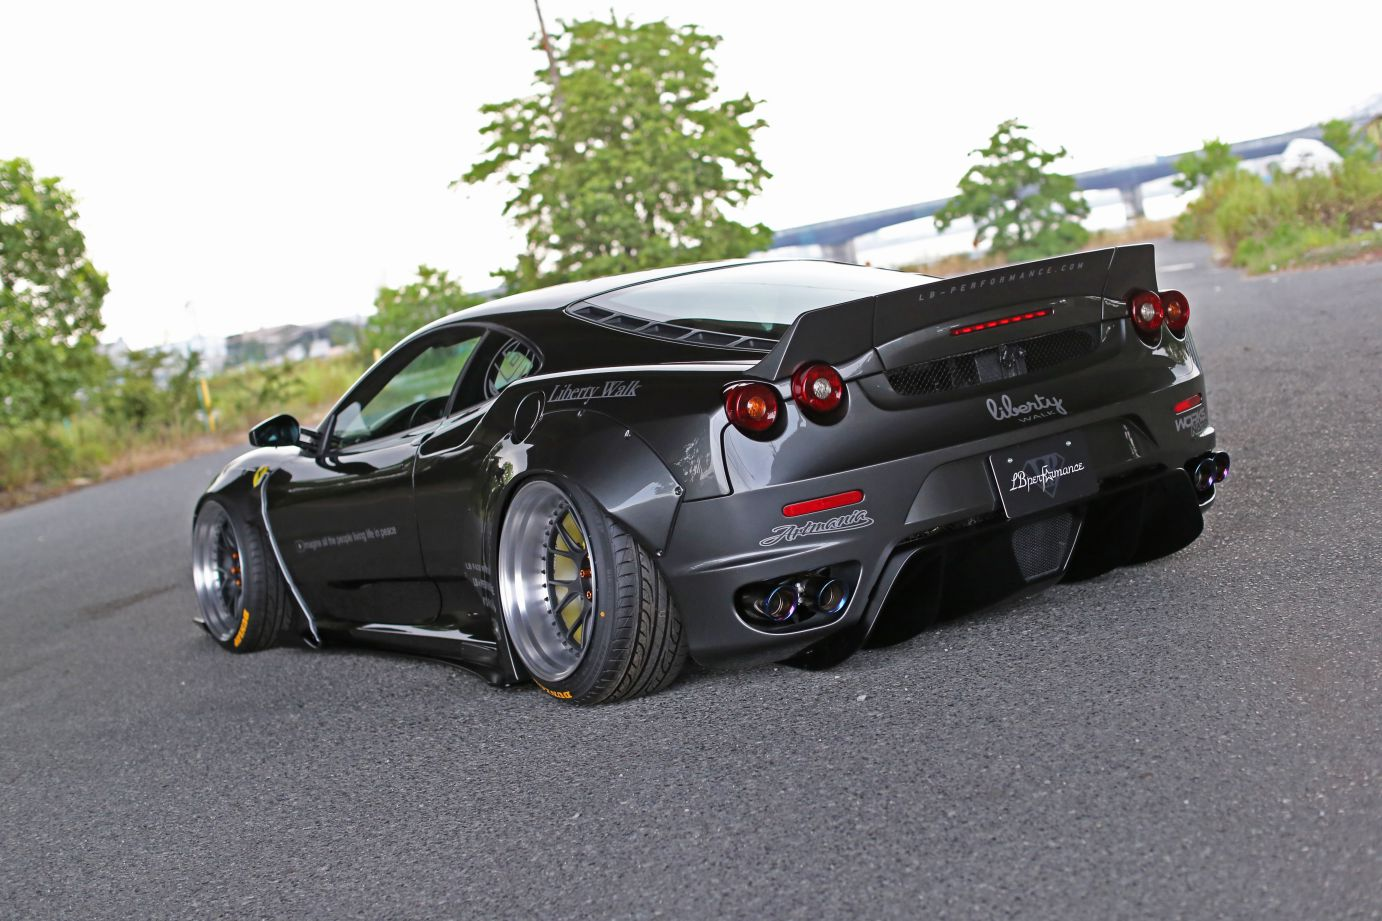 IMG_0637_compressed LB-WORKS F430